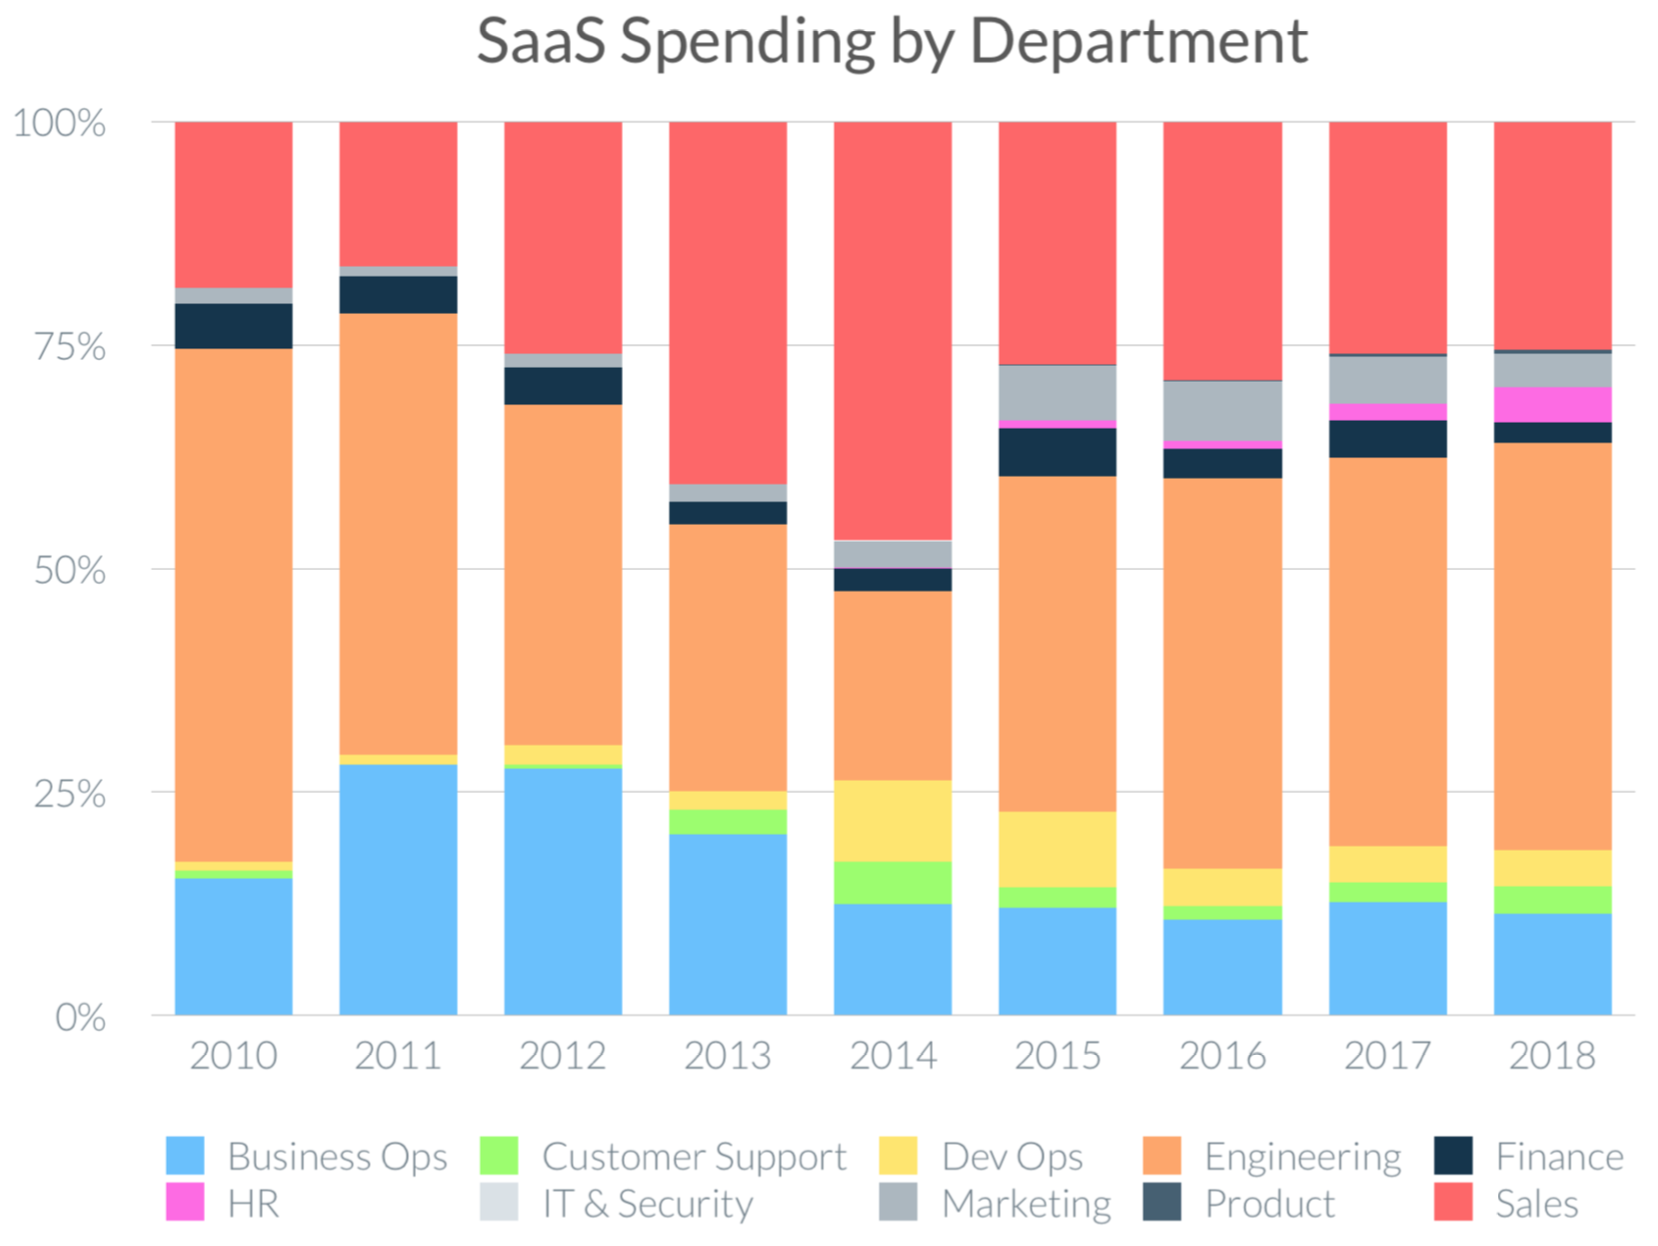 SaaS Spending by Department